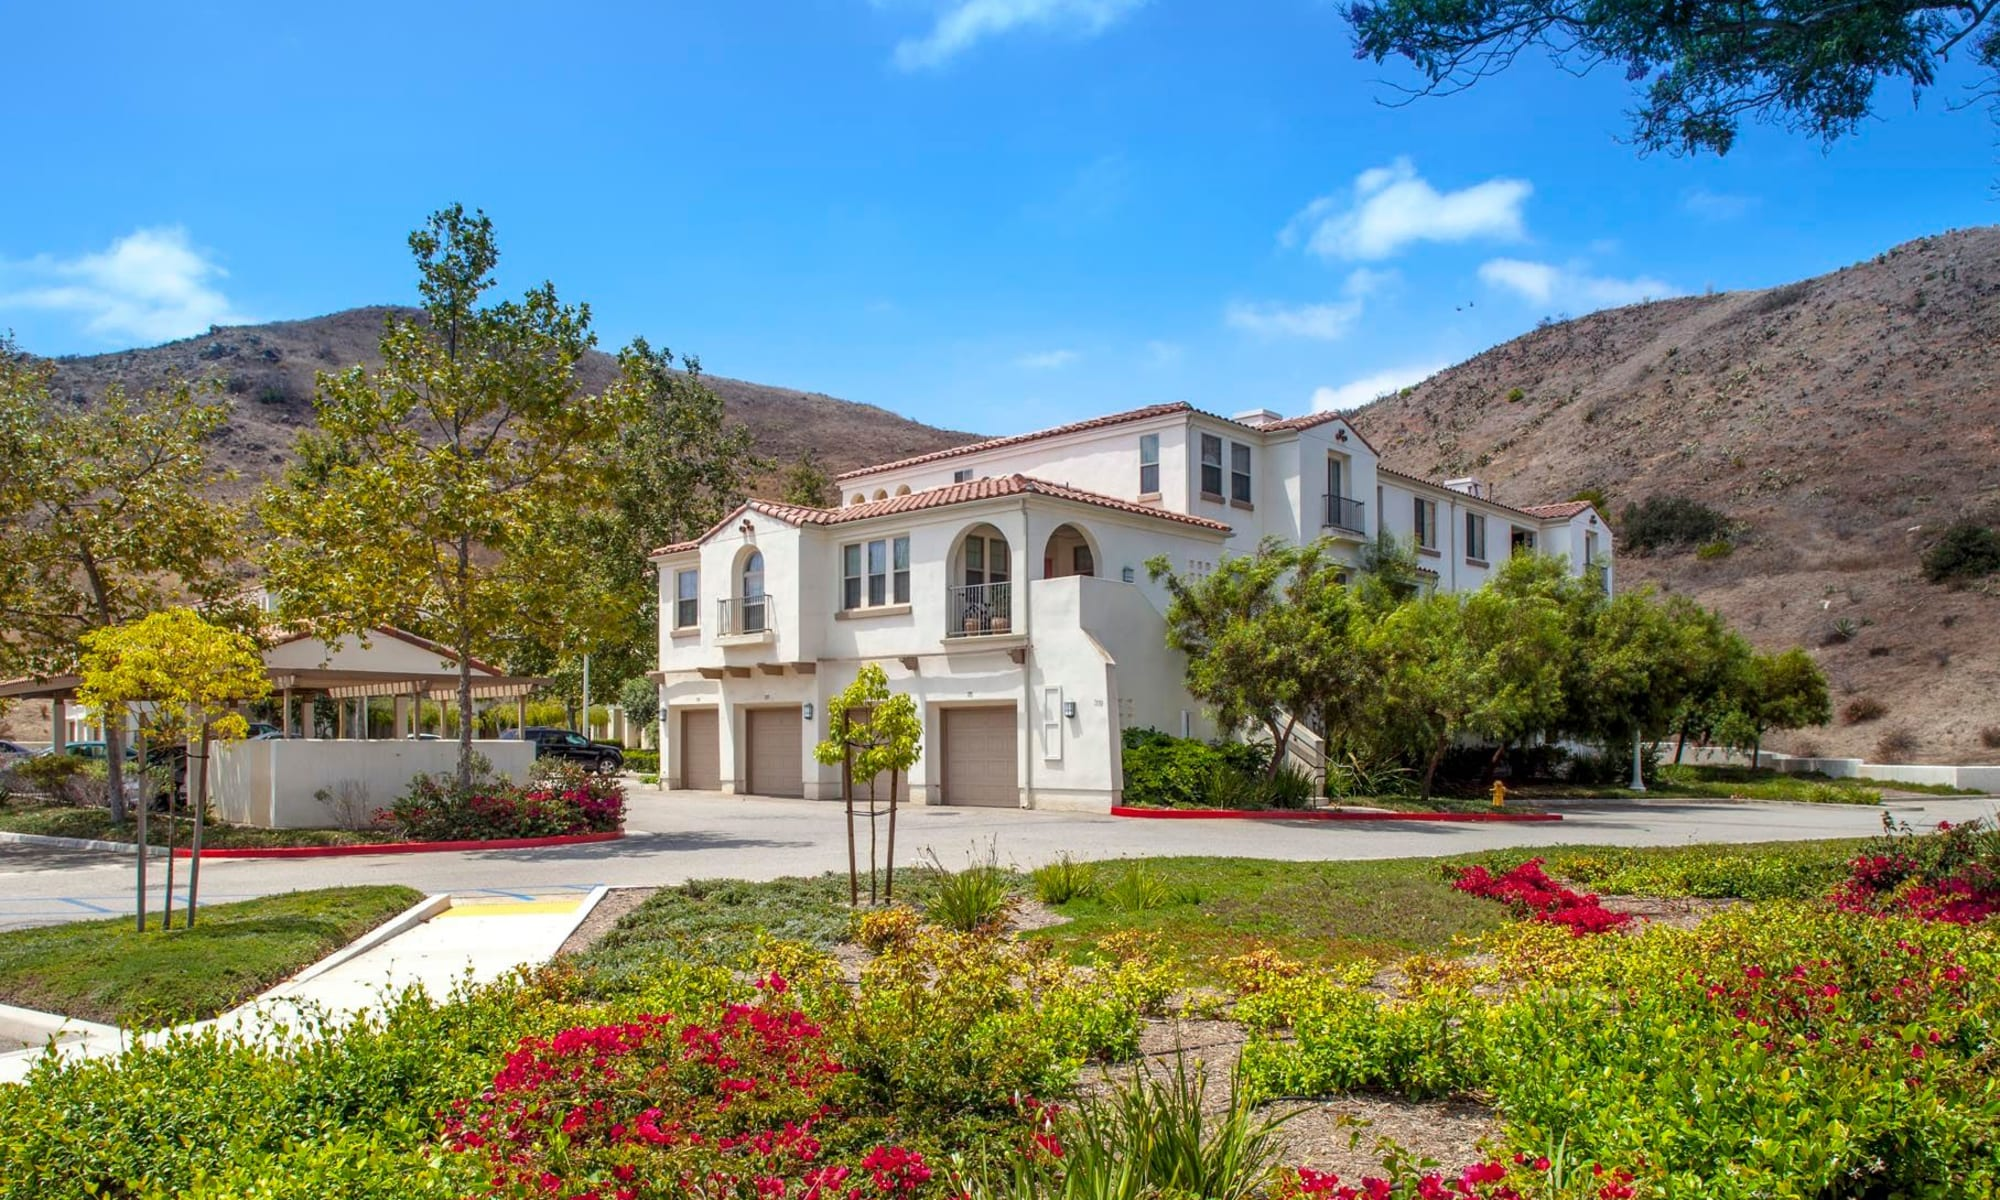 Exterior view of our mission-style community on a sunny day at Mission Hills in Camarillo, California